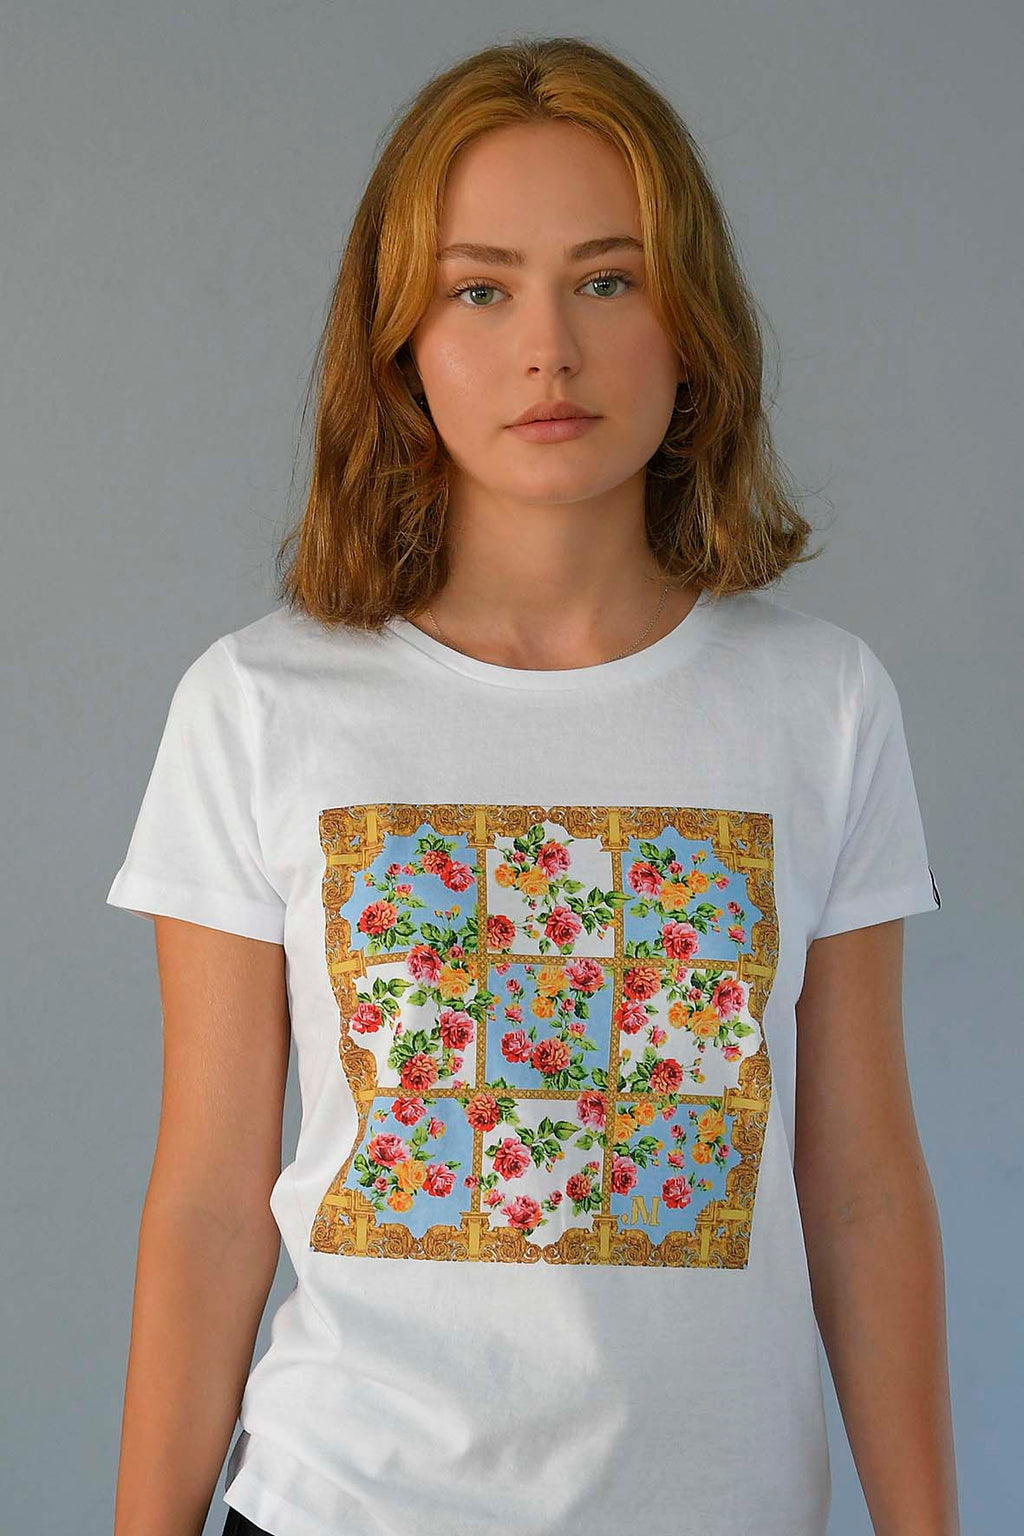 T-SHIRT ROSE GARDEN JM